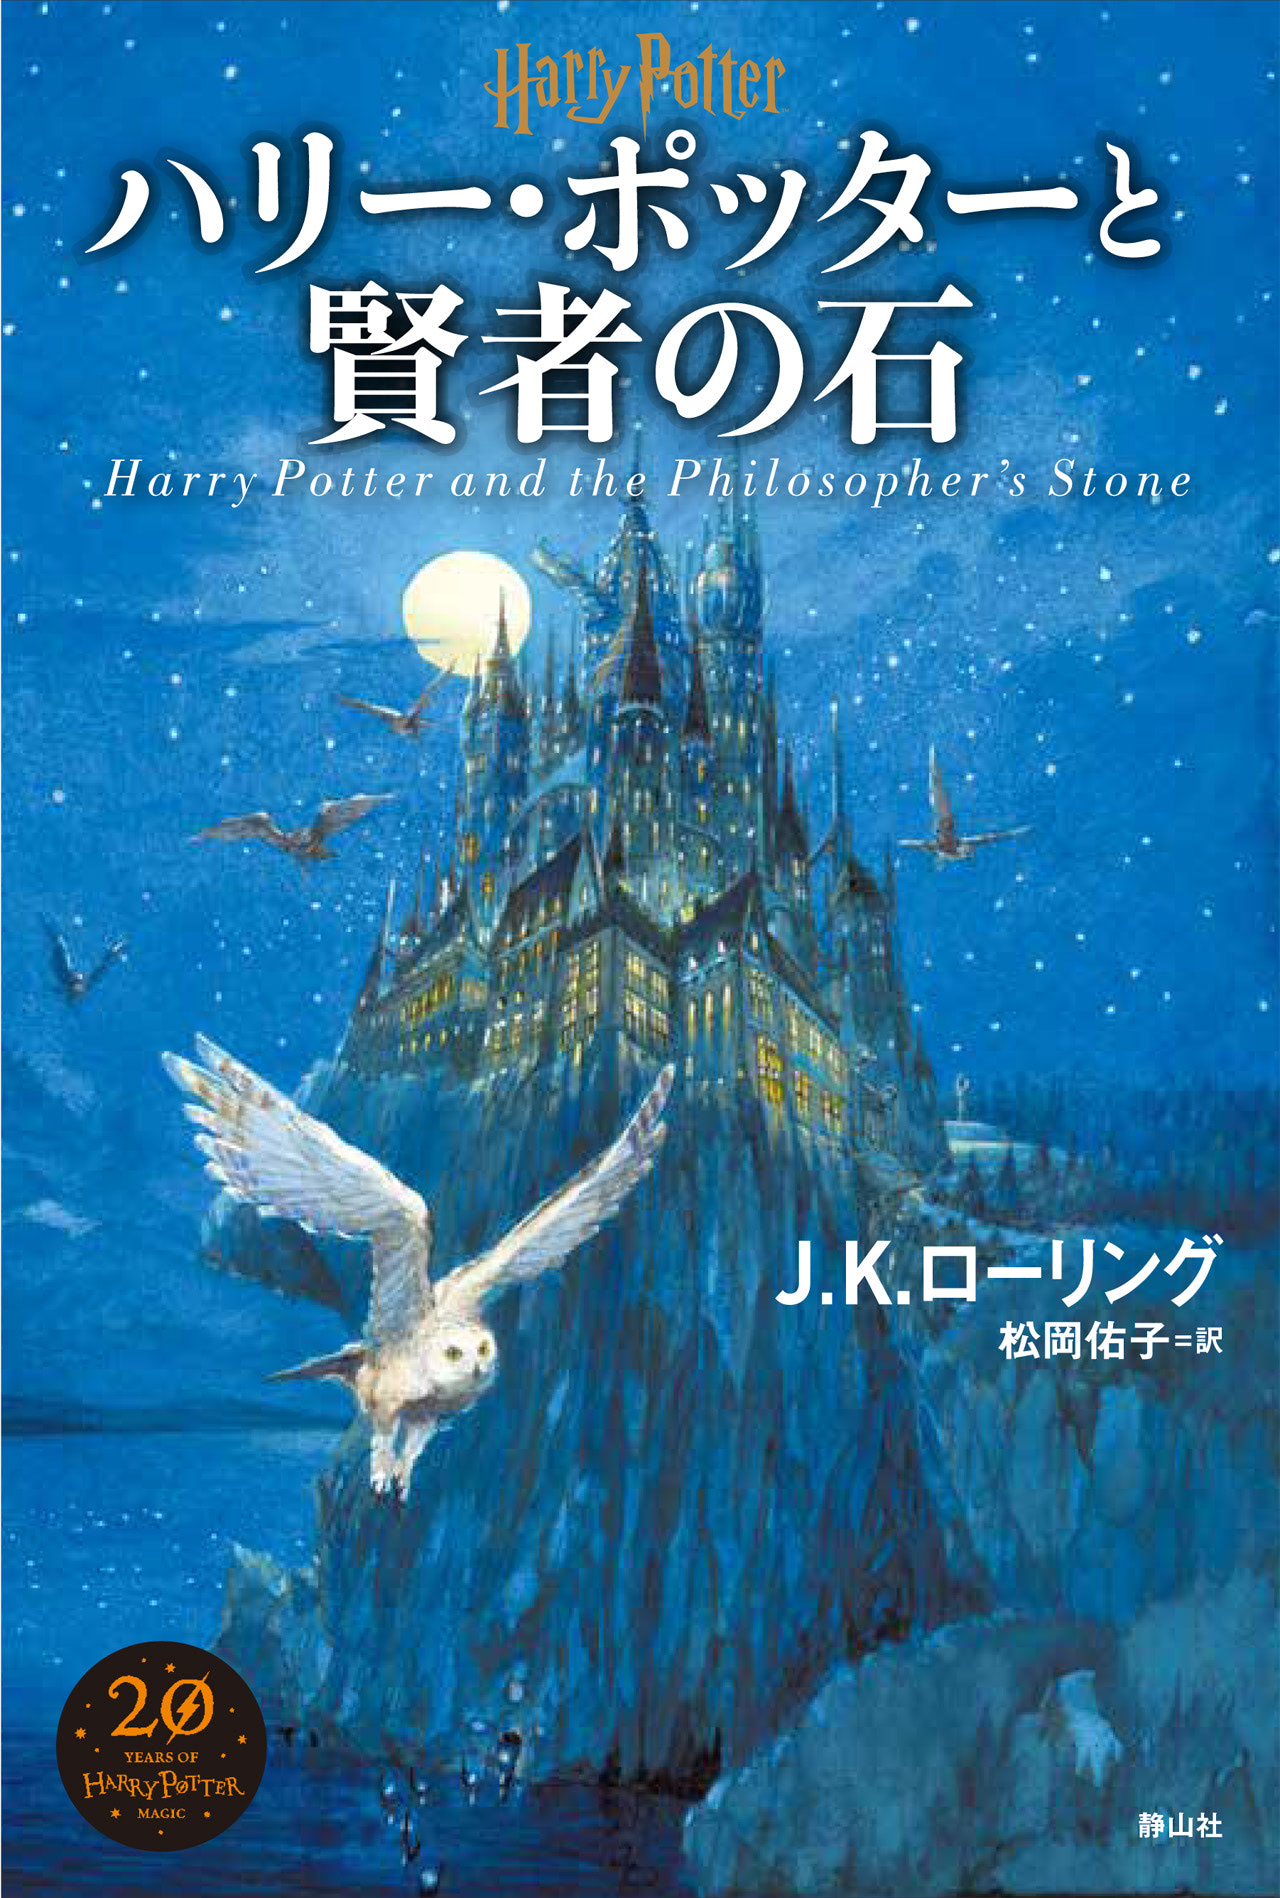 Japan celebrates 20th anniversary of 'Harry Potter' with new cover art — Harry  Potter Fan Zone